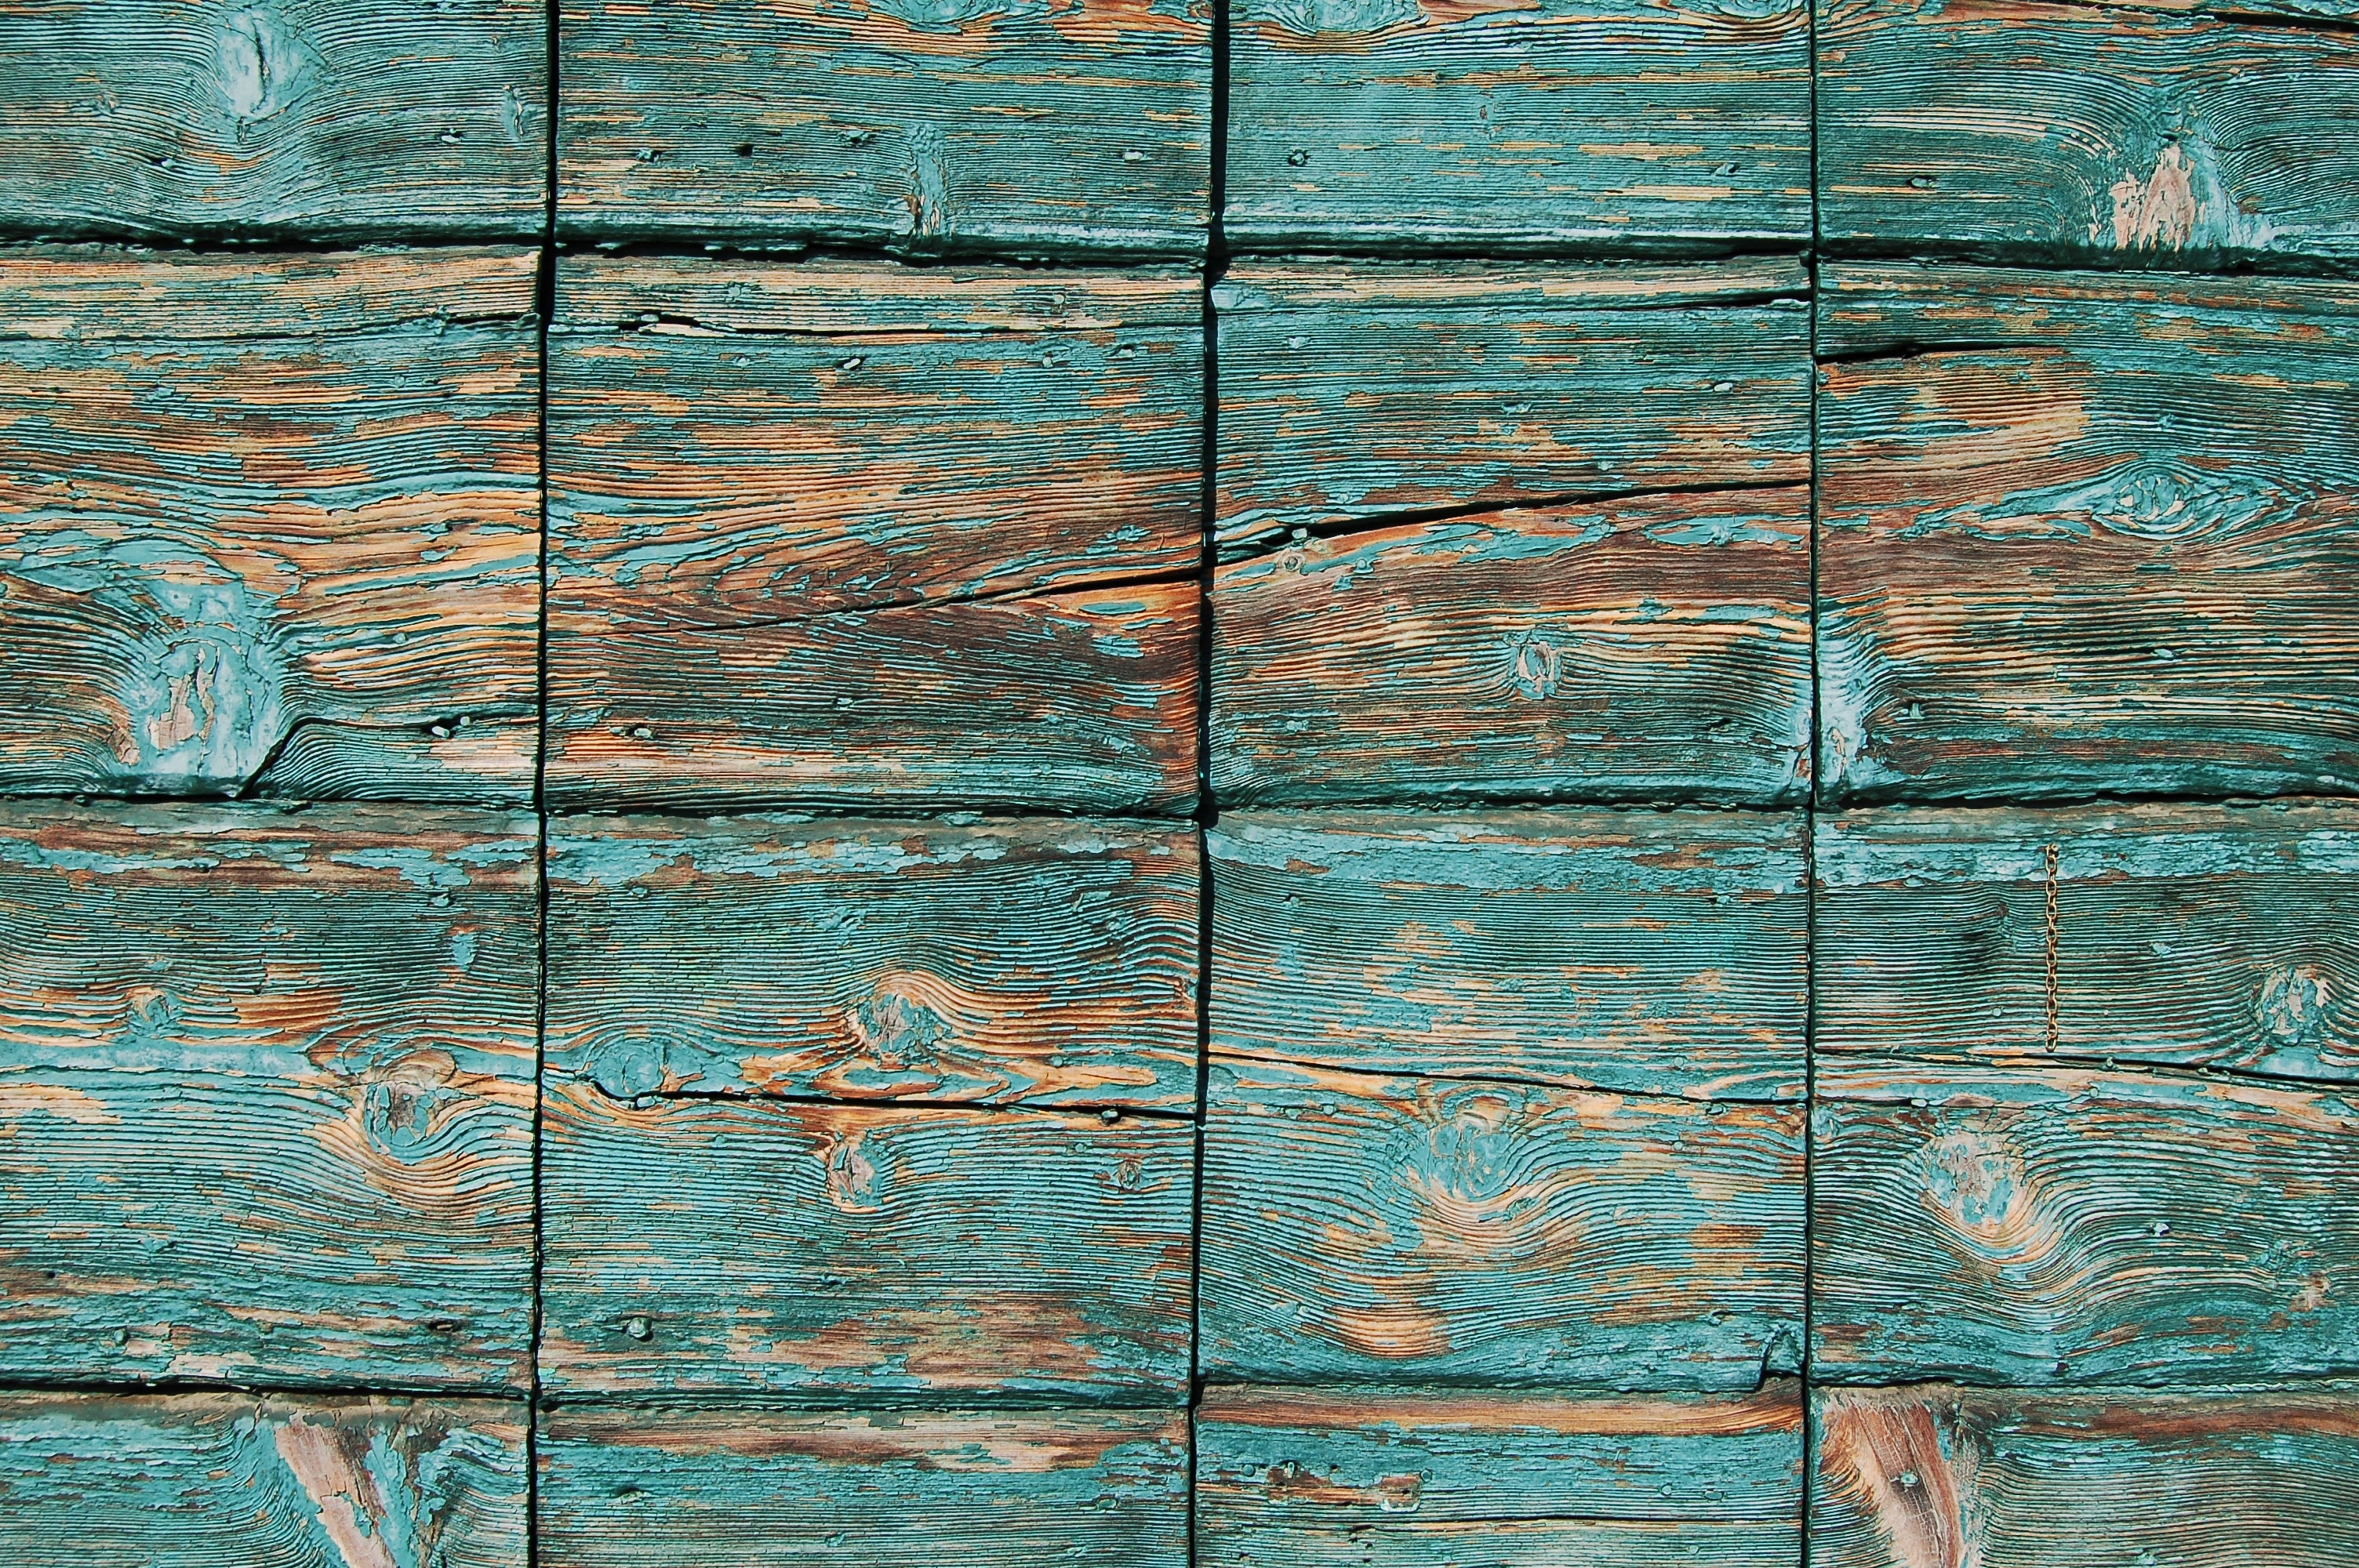 Turquoise paint coming off square wooden planks